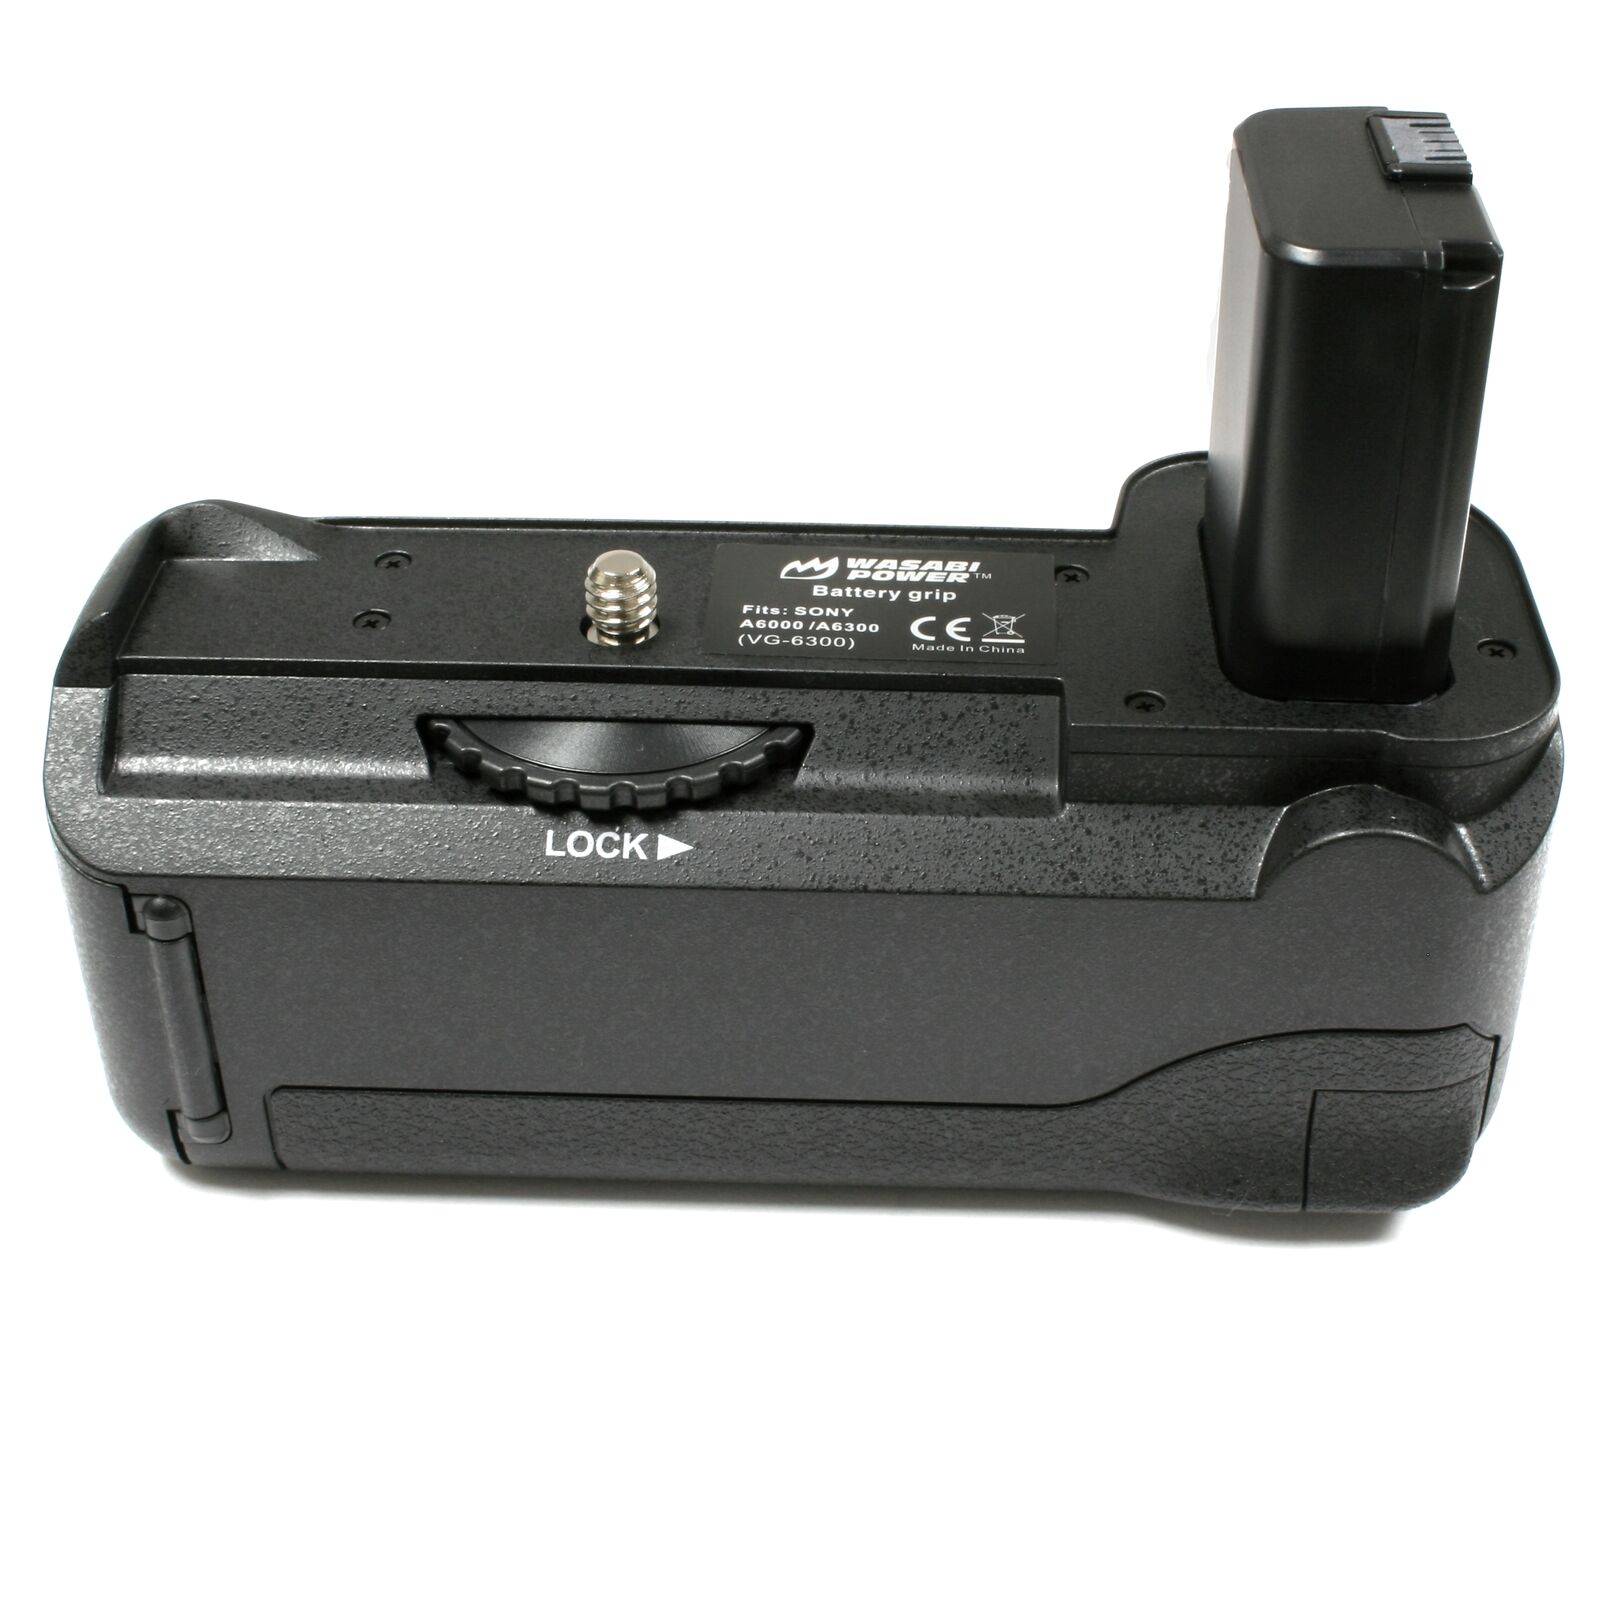 Wasabi Power Battery Grip for Sony VG-6300 and Sony A6300/A6000